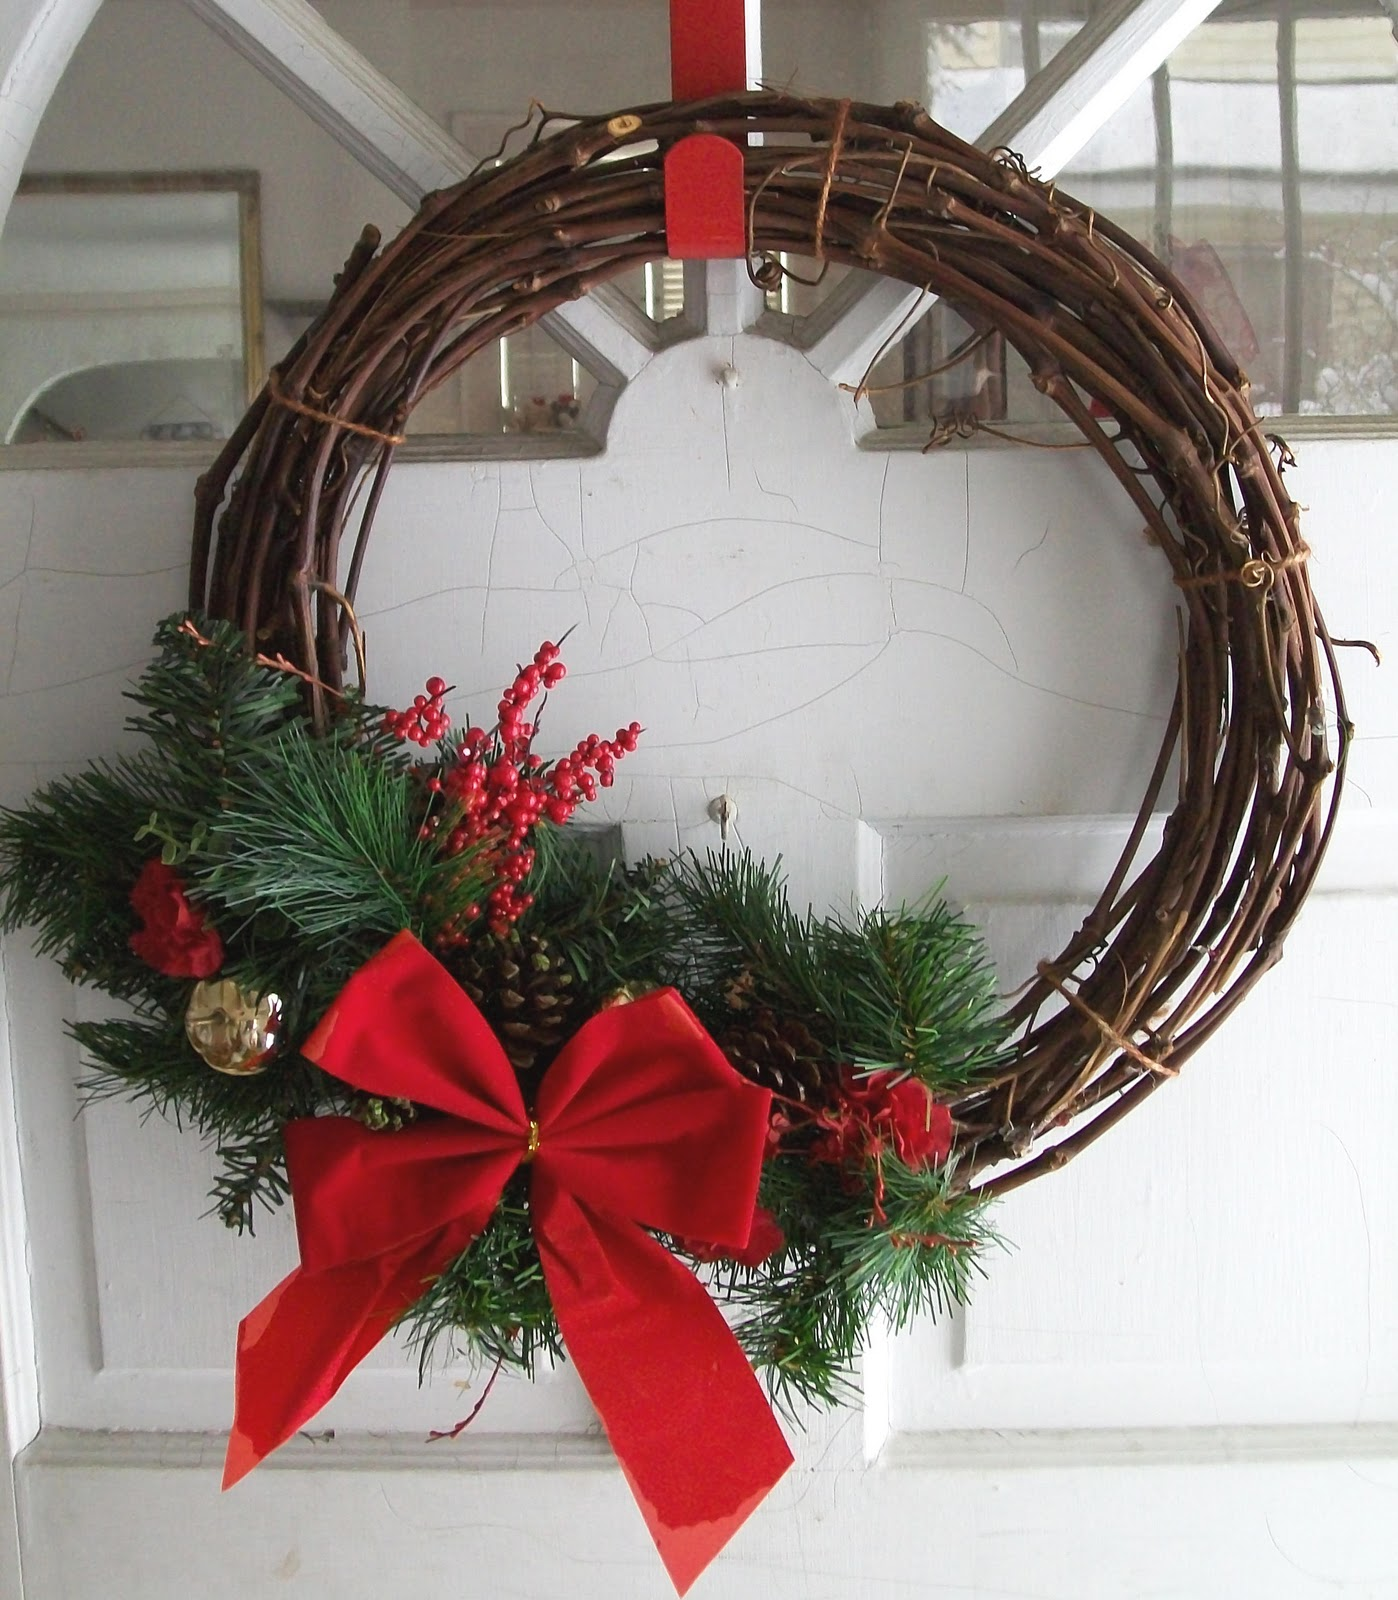 Make a diy christmas wreaths yourself to celebrate the holiday diy christmas wreaths 2 solutioingenieria Images